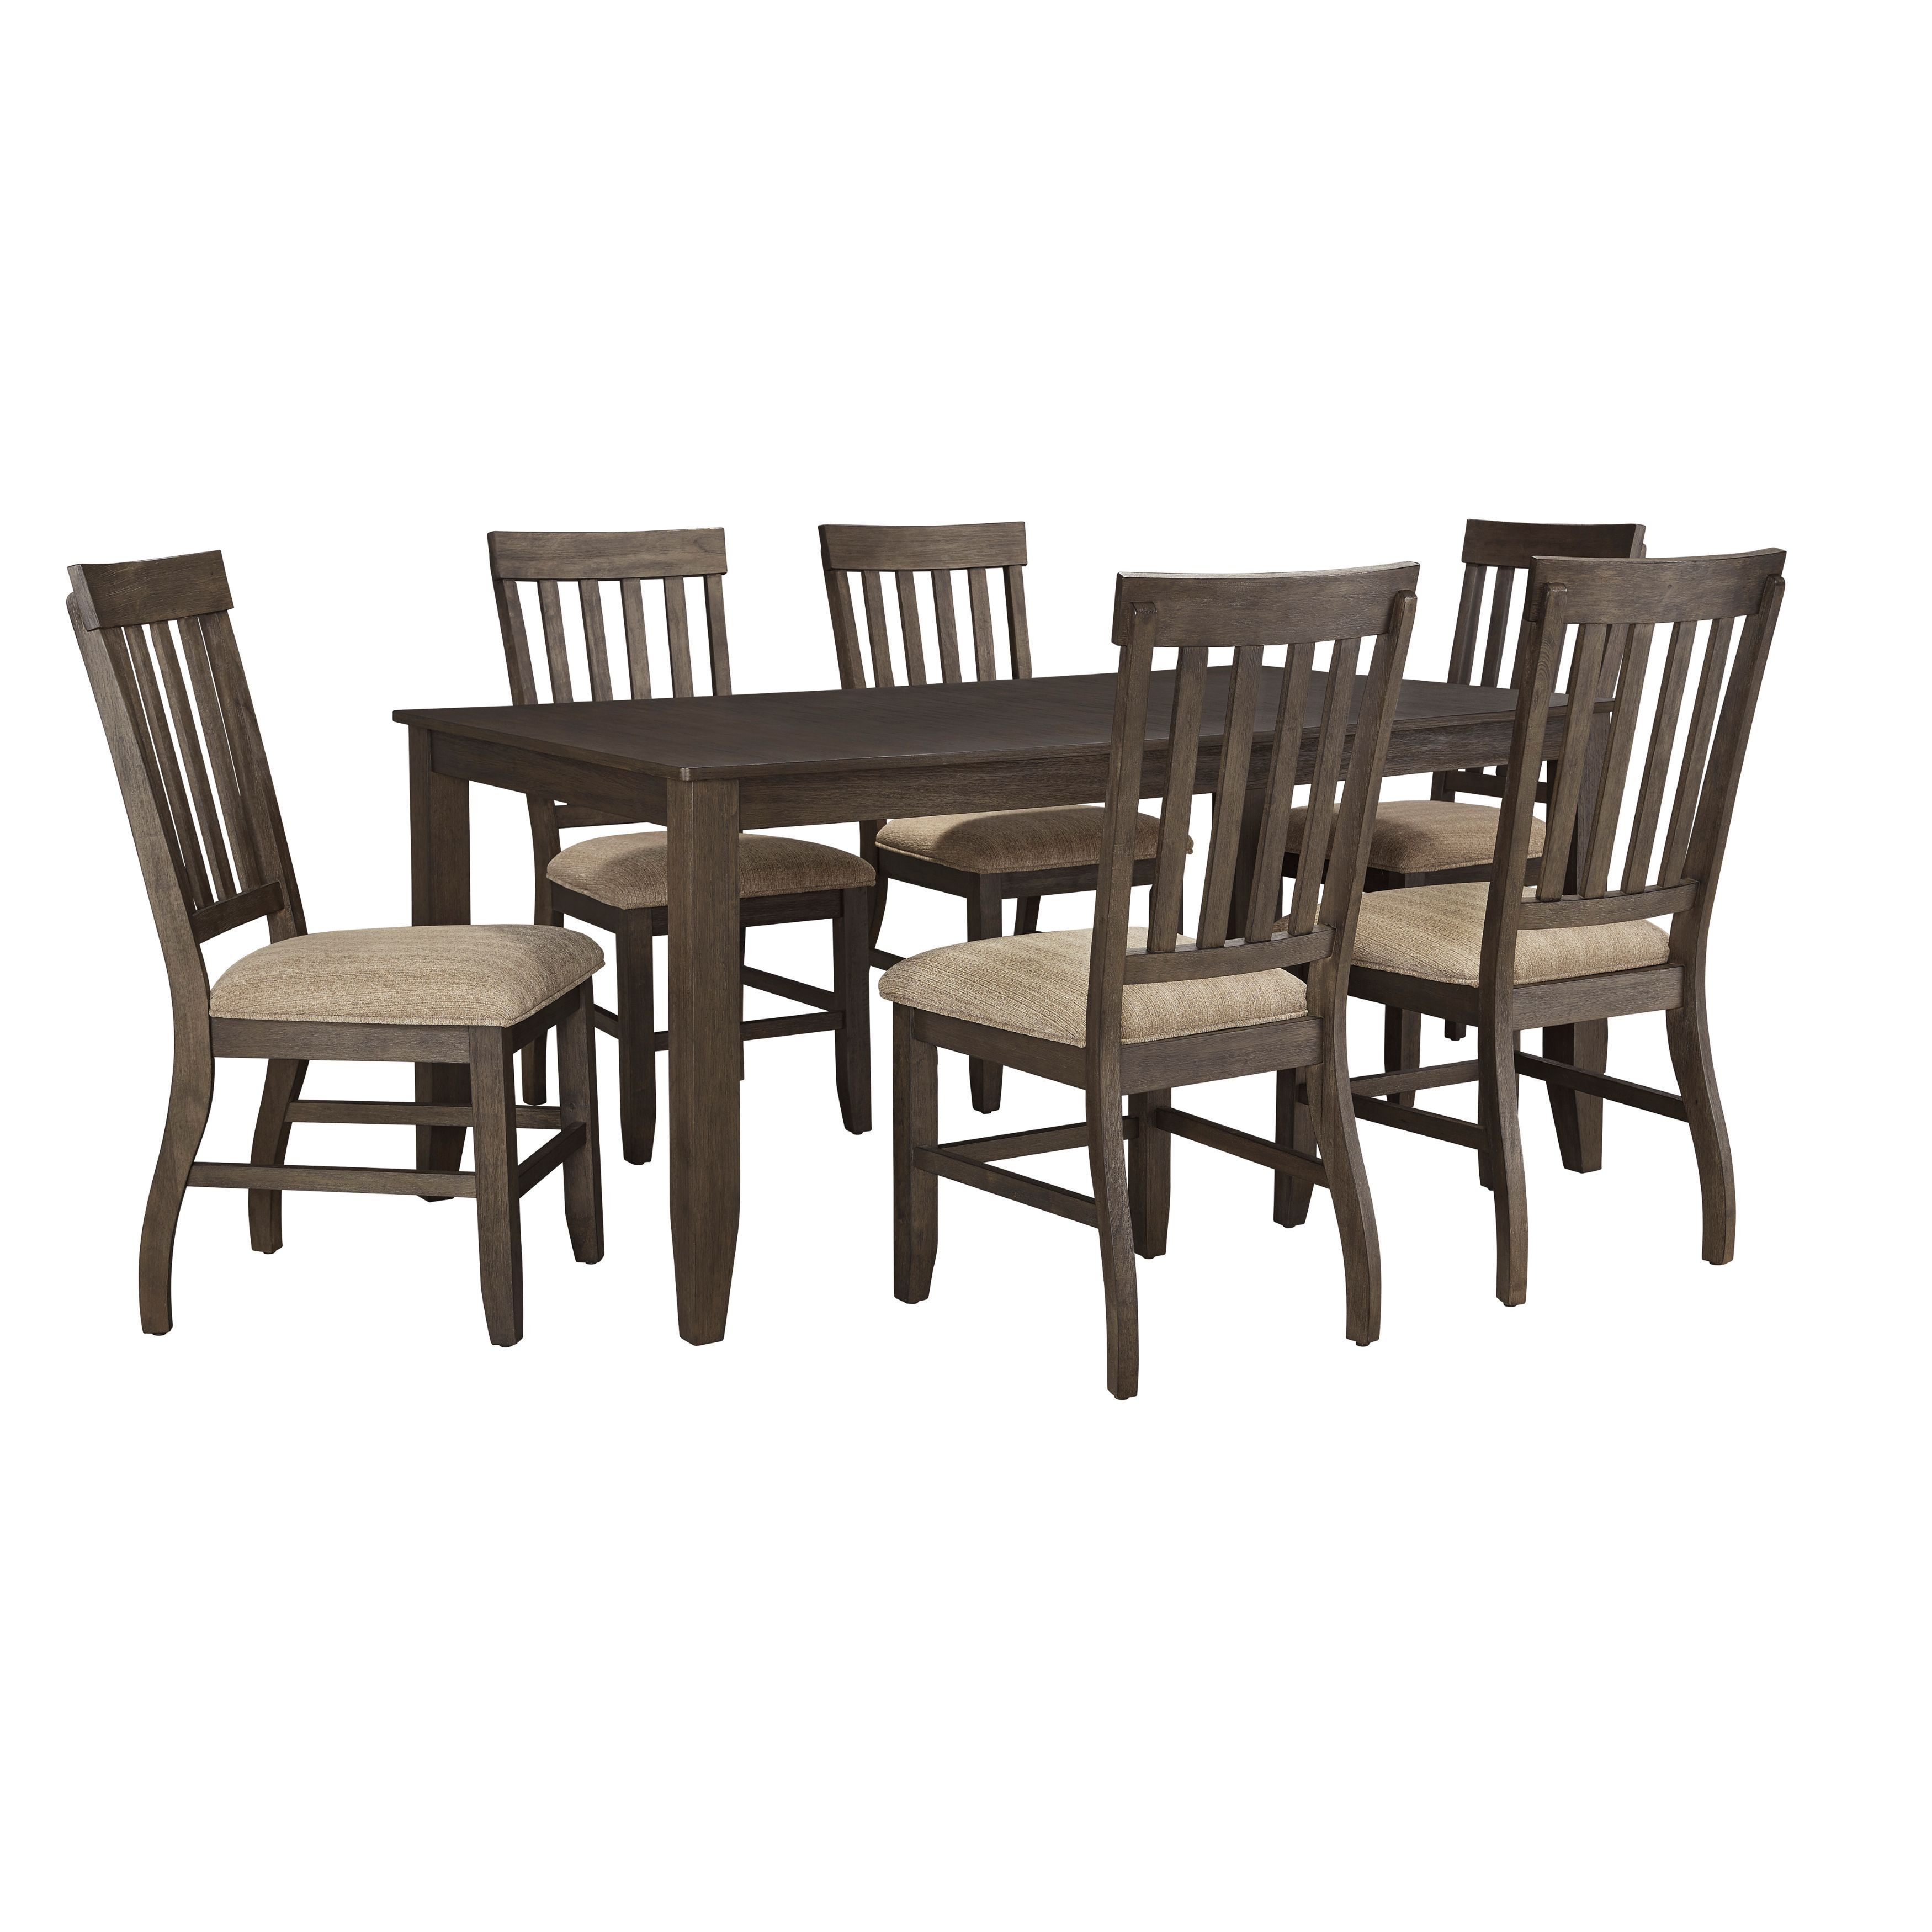 Ashley Dresbar Cream Table and Four Chairs Set (Dining se...